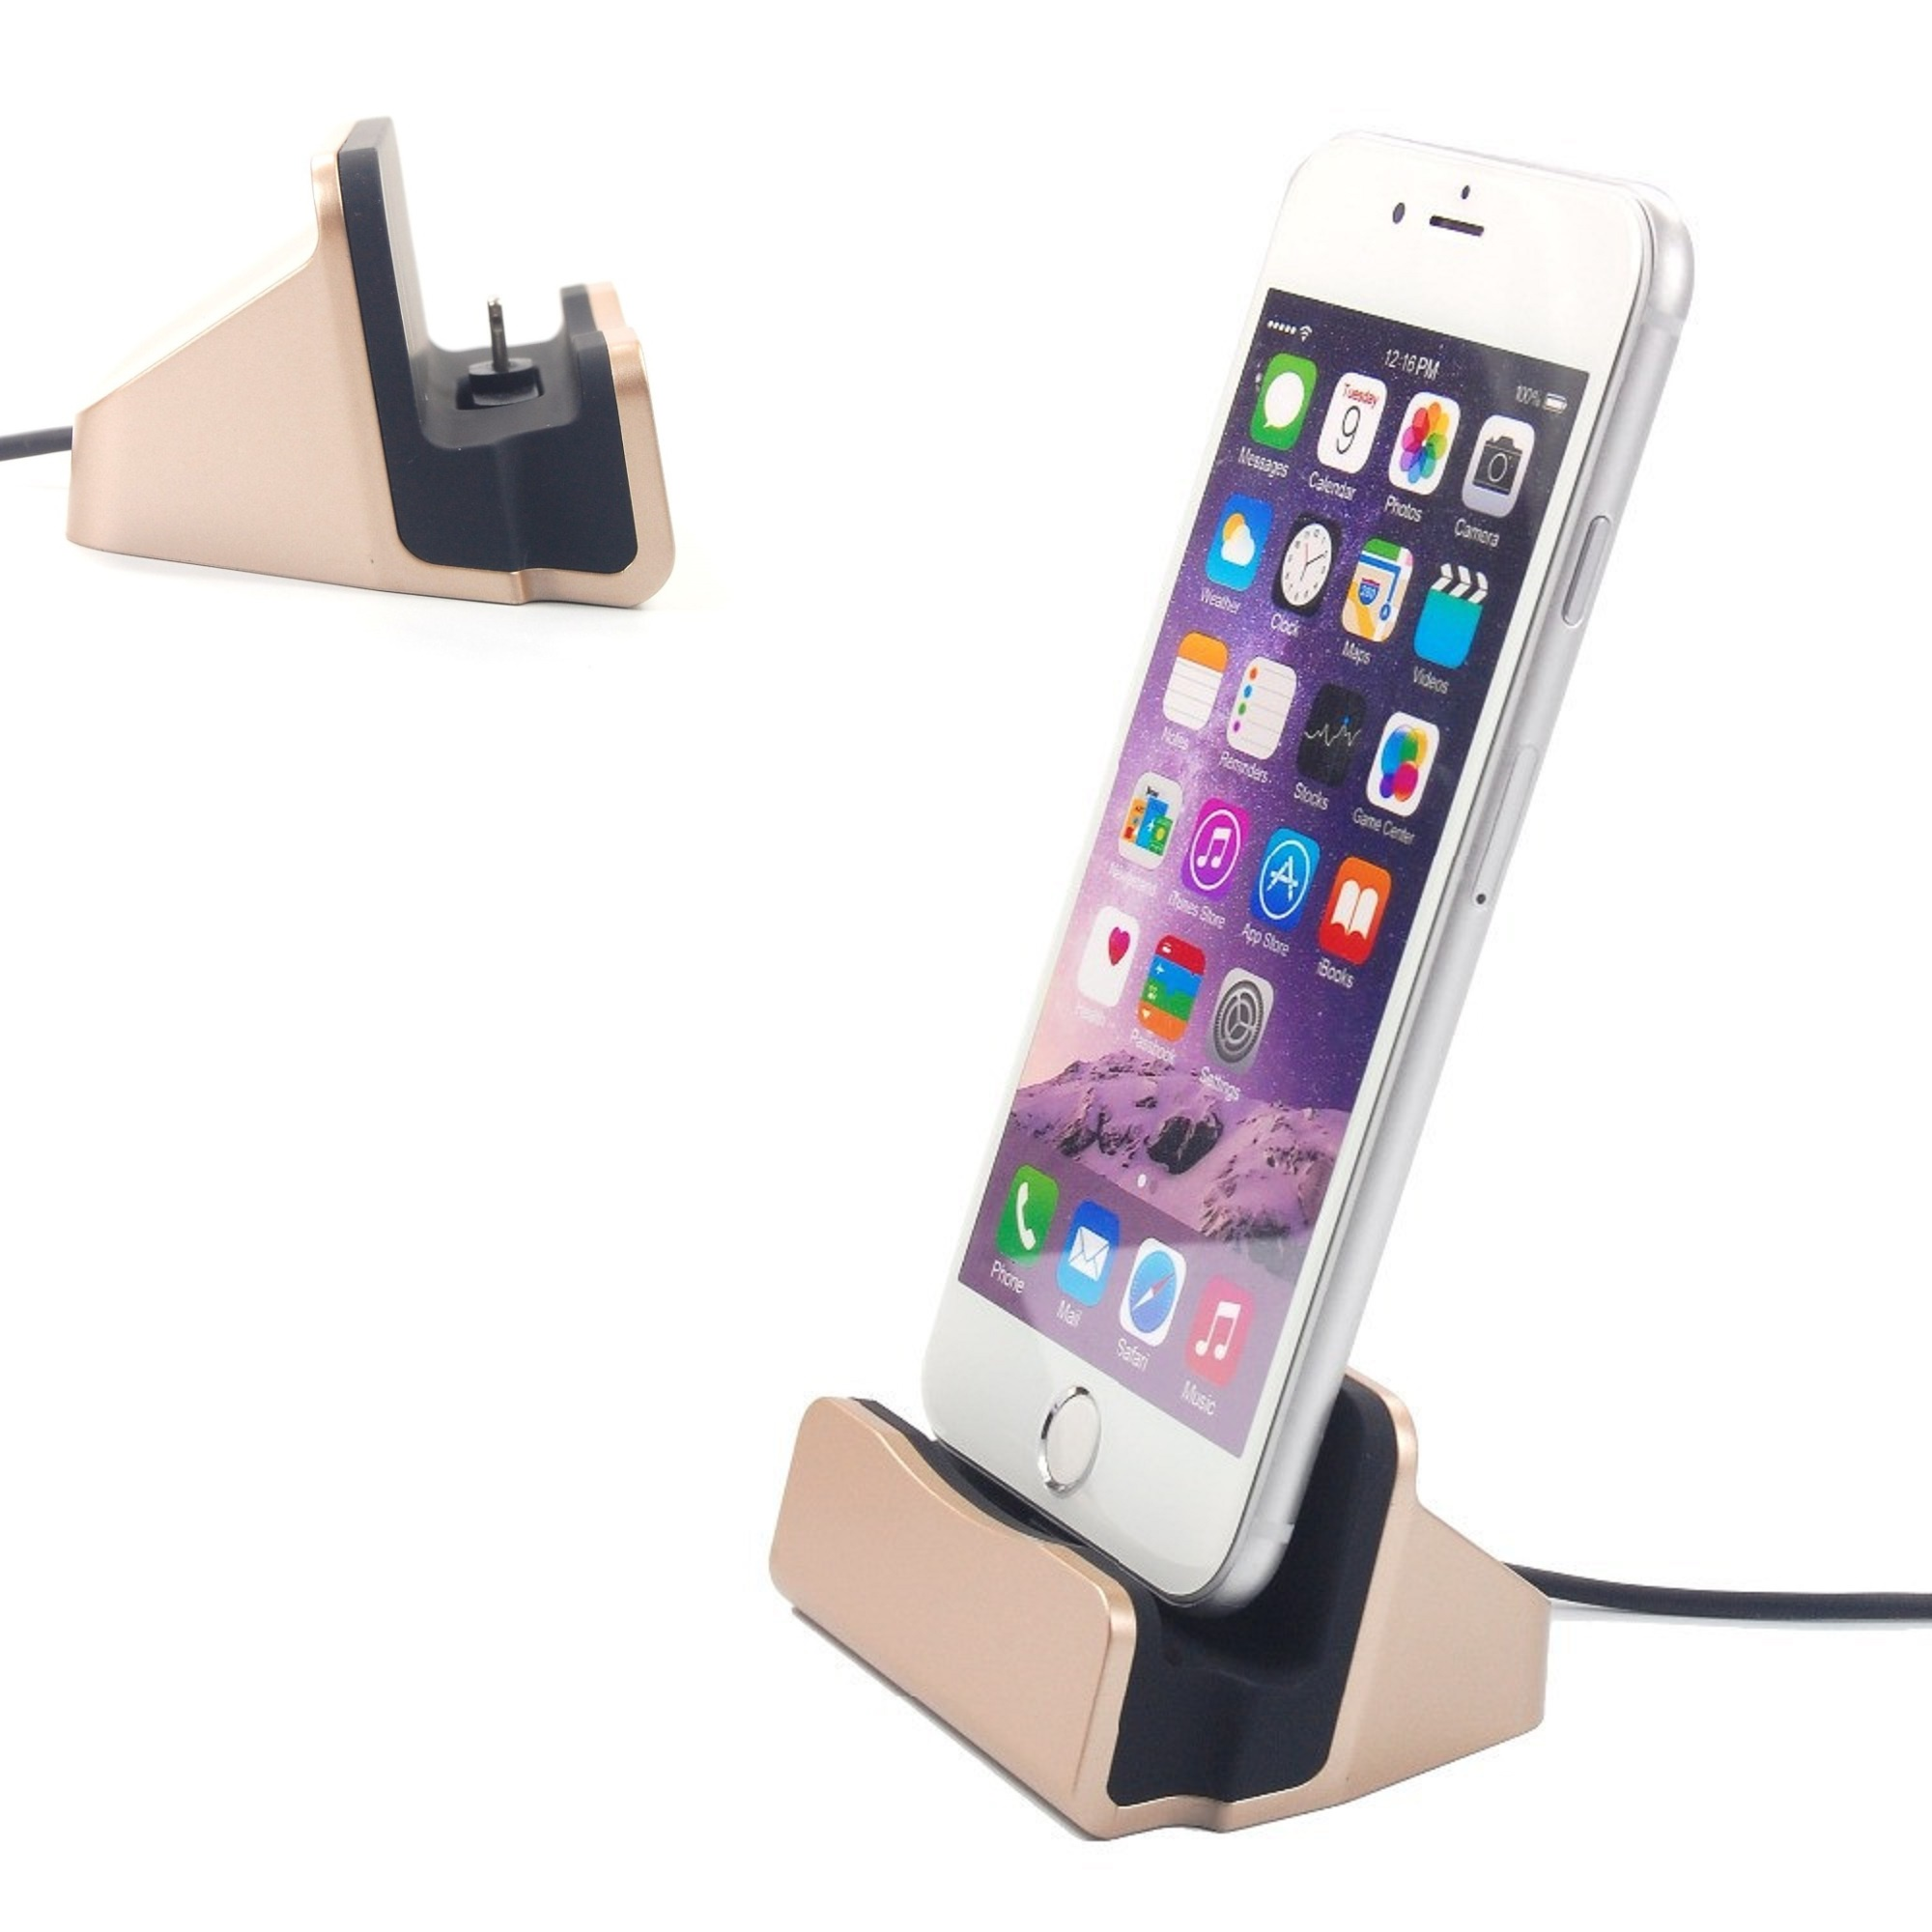 dockingstation ladestation ladeger t ladekabel f r apple iphone 5 5s 5c 6 6s se ebay. Black Bedroom Furniture Sets. Home Design Ideas